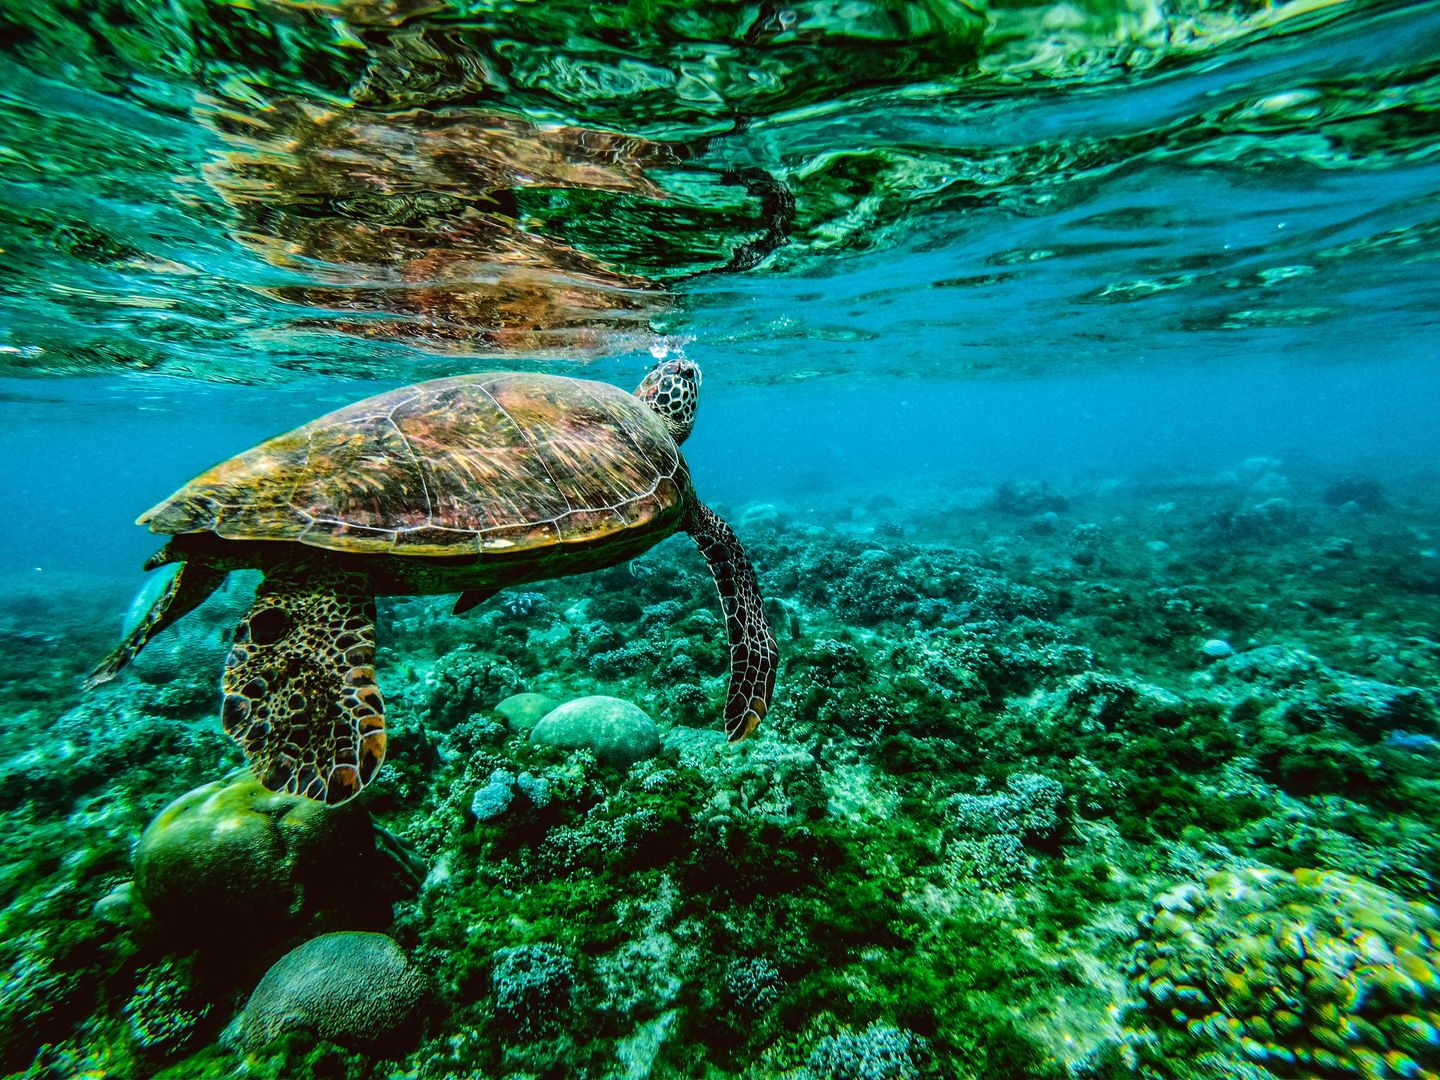 A sea turtle swimming over coral reefs in Apo Island, one of the best places to visit in the Philippines